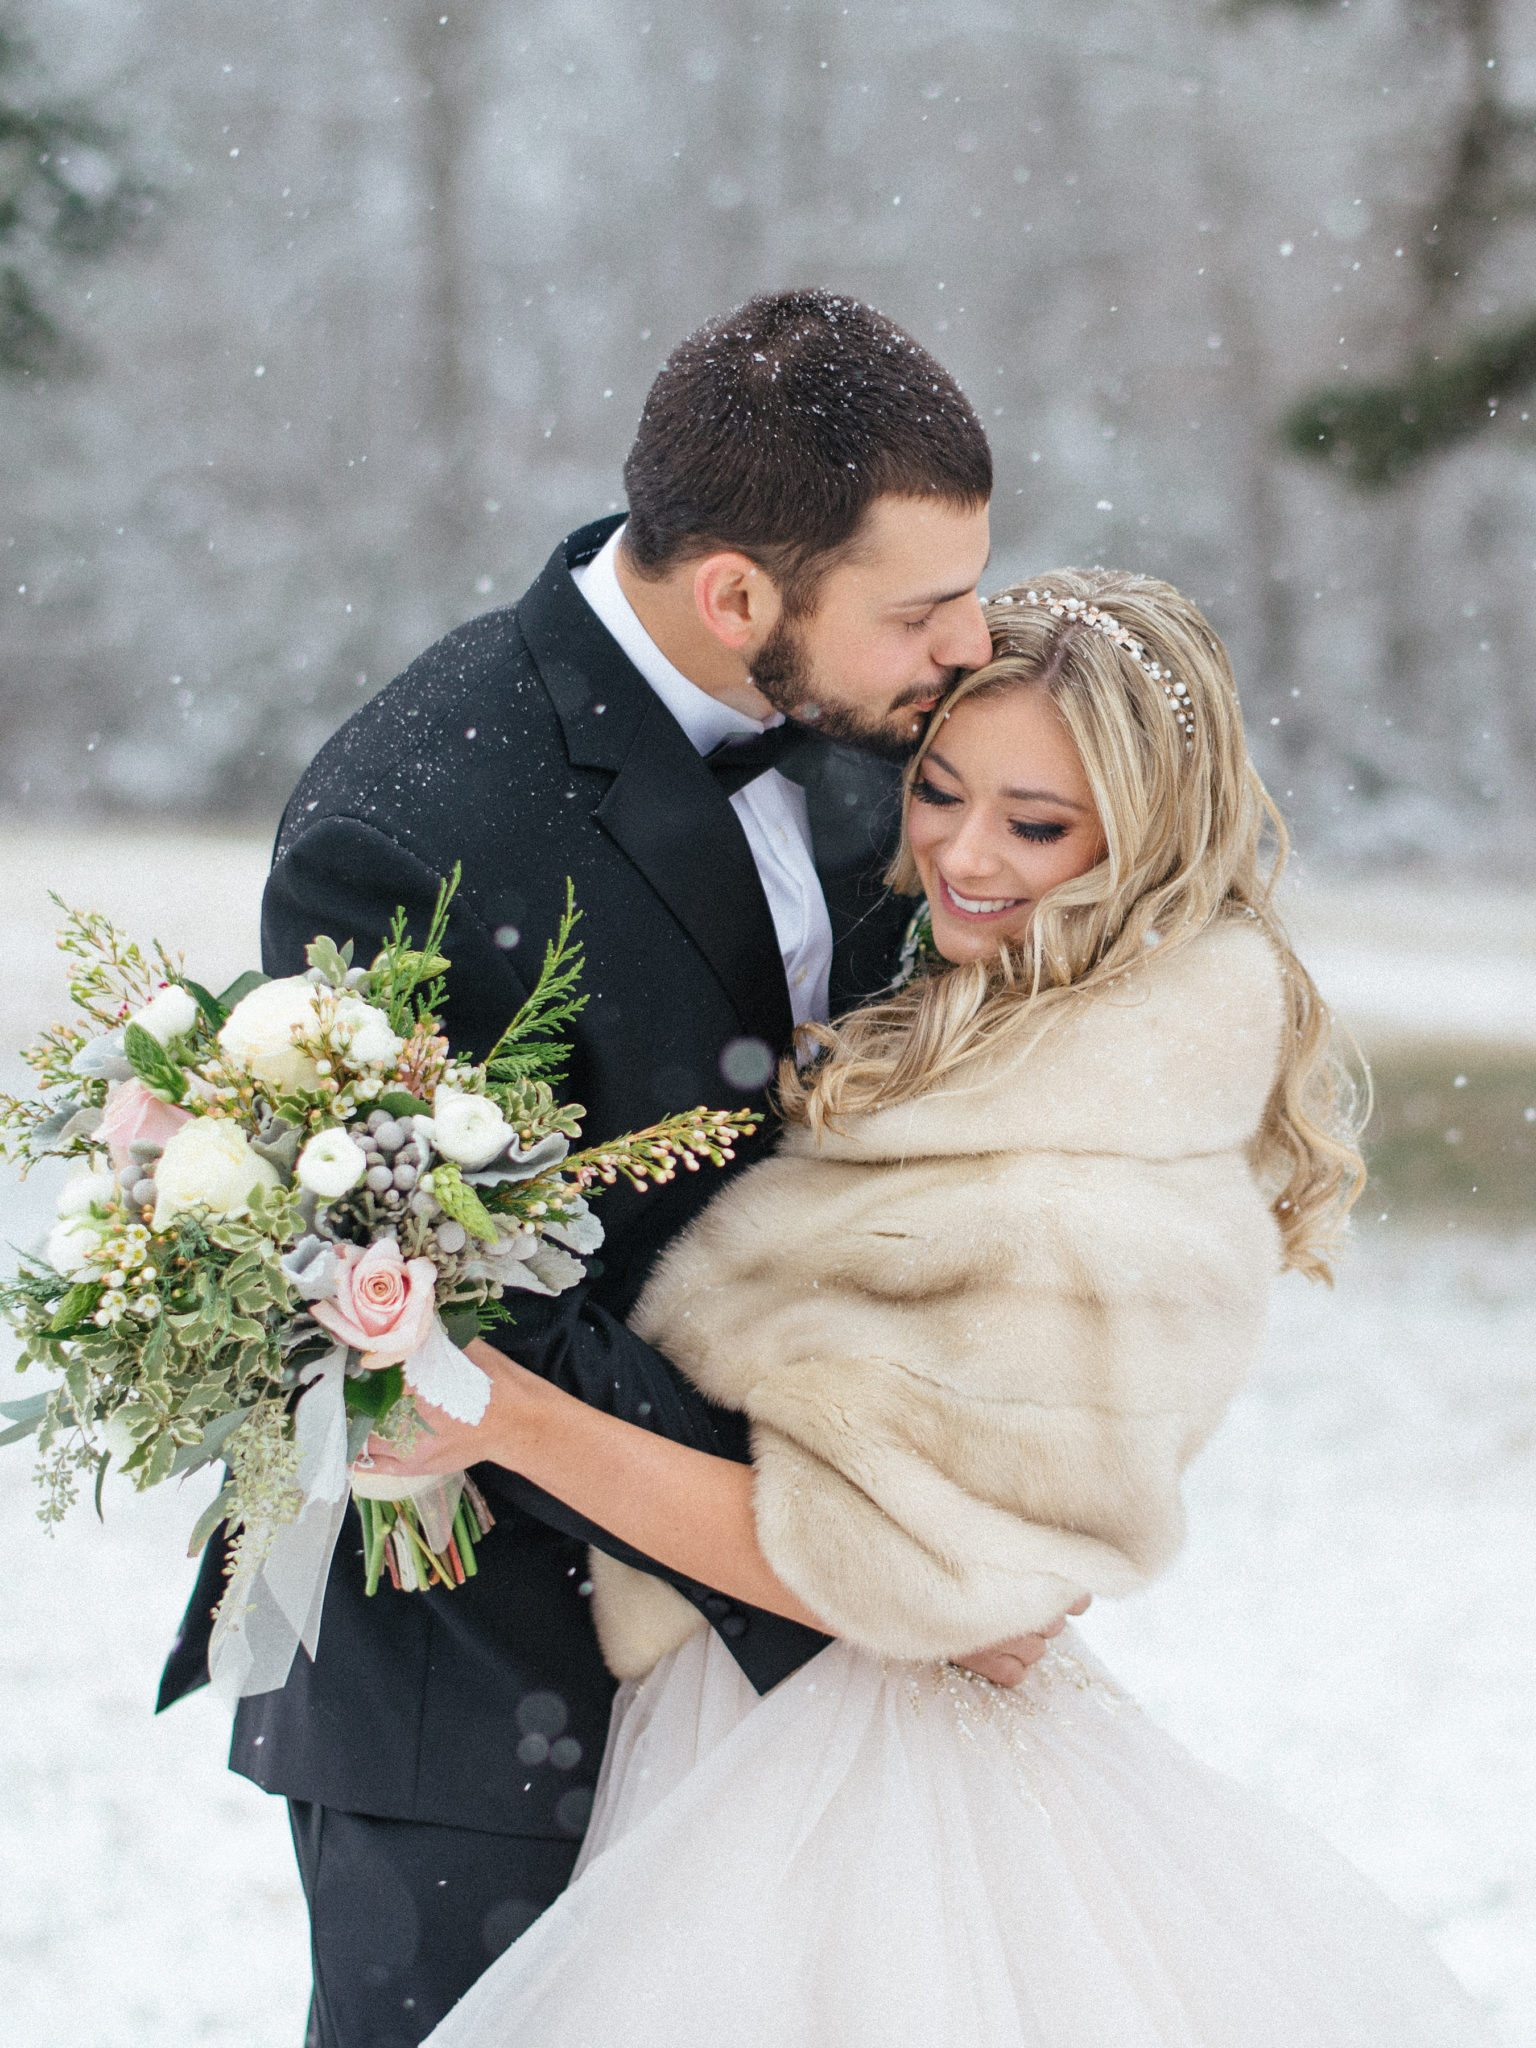 KimStockwellAshleyandMattMoraisVIneyardWedding214 Winter Weddings - A Snow Fairy Tale